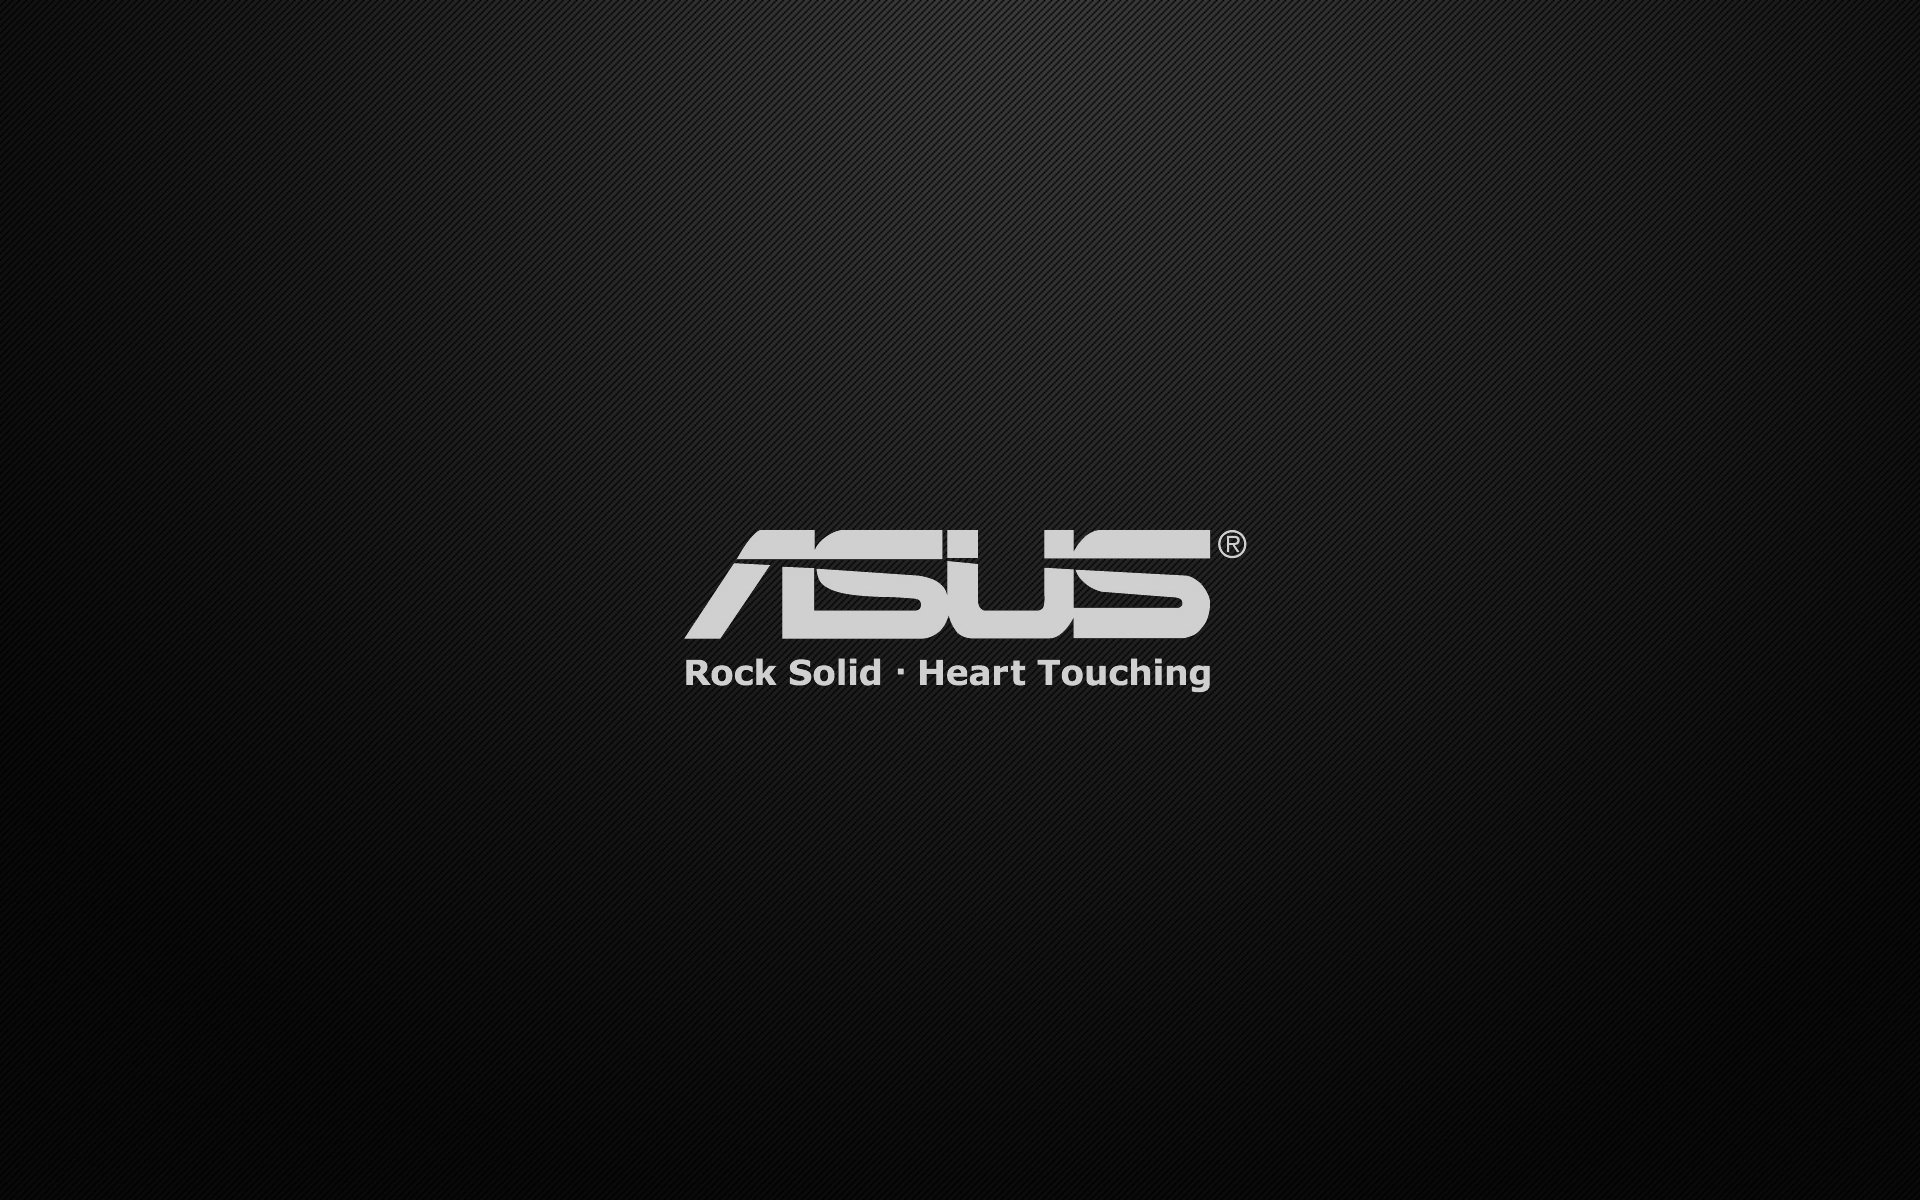 Php Wallpaper Hd 167 Asus Hd Wallpapers Background Images Wallpaper Abyss